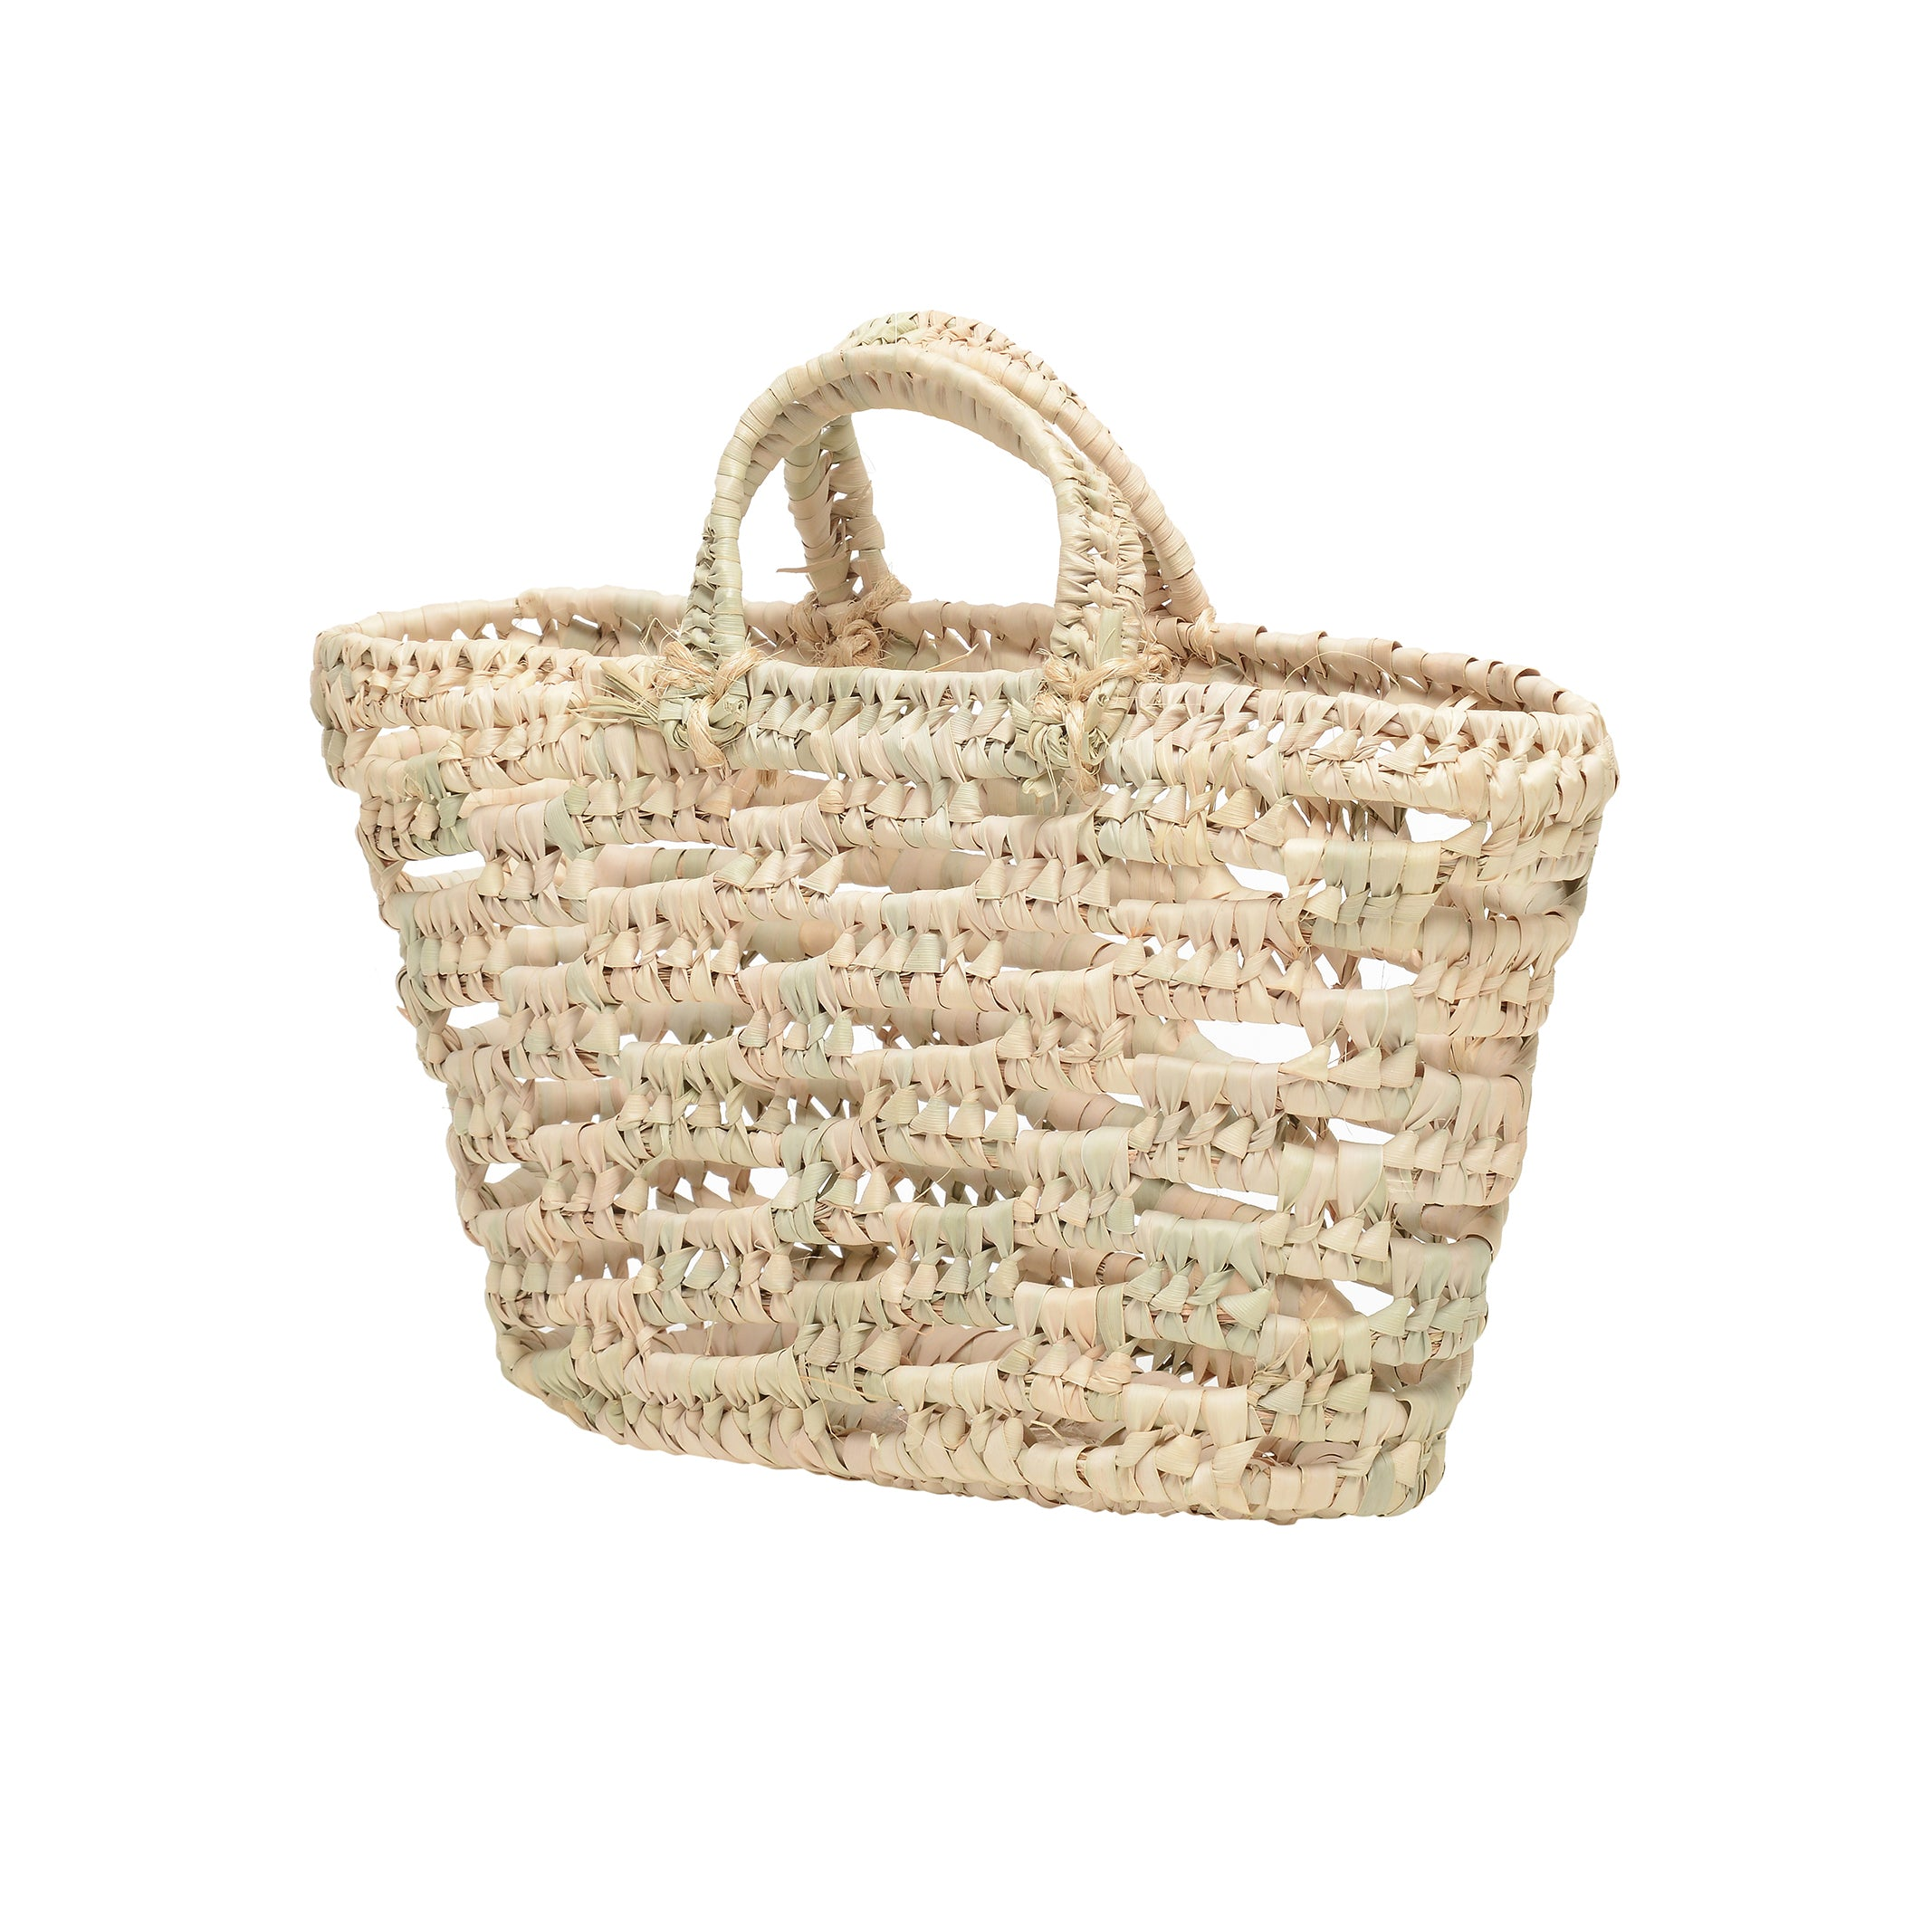 EXCLUSIVE small open weave Mallorcan tote